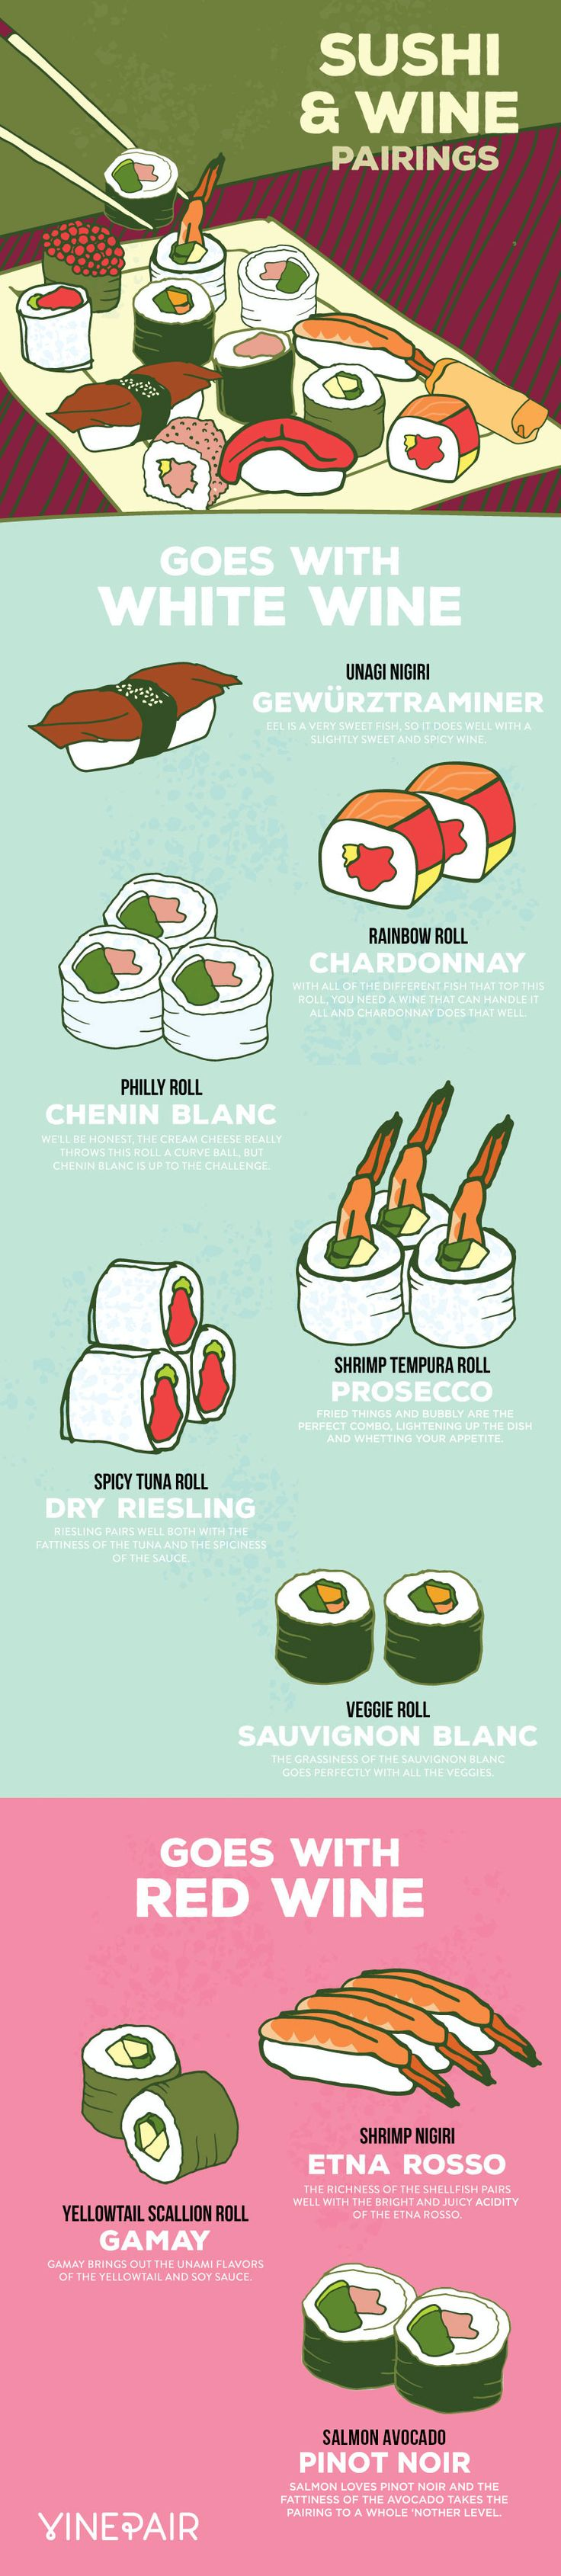 The Perfect Wine Pairing For Your Favorite Sushi [Infographic] | Bon Viveur Magazine | Pinterest | Wine, Wine pairings and Food